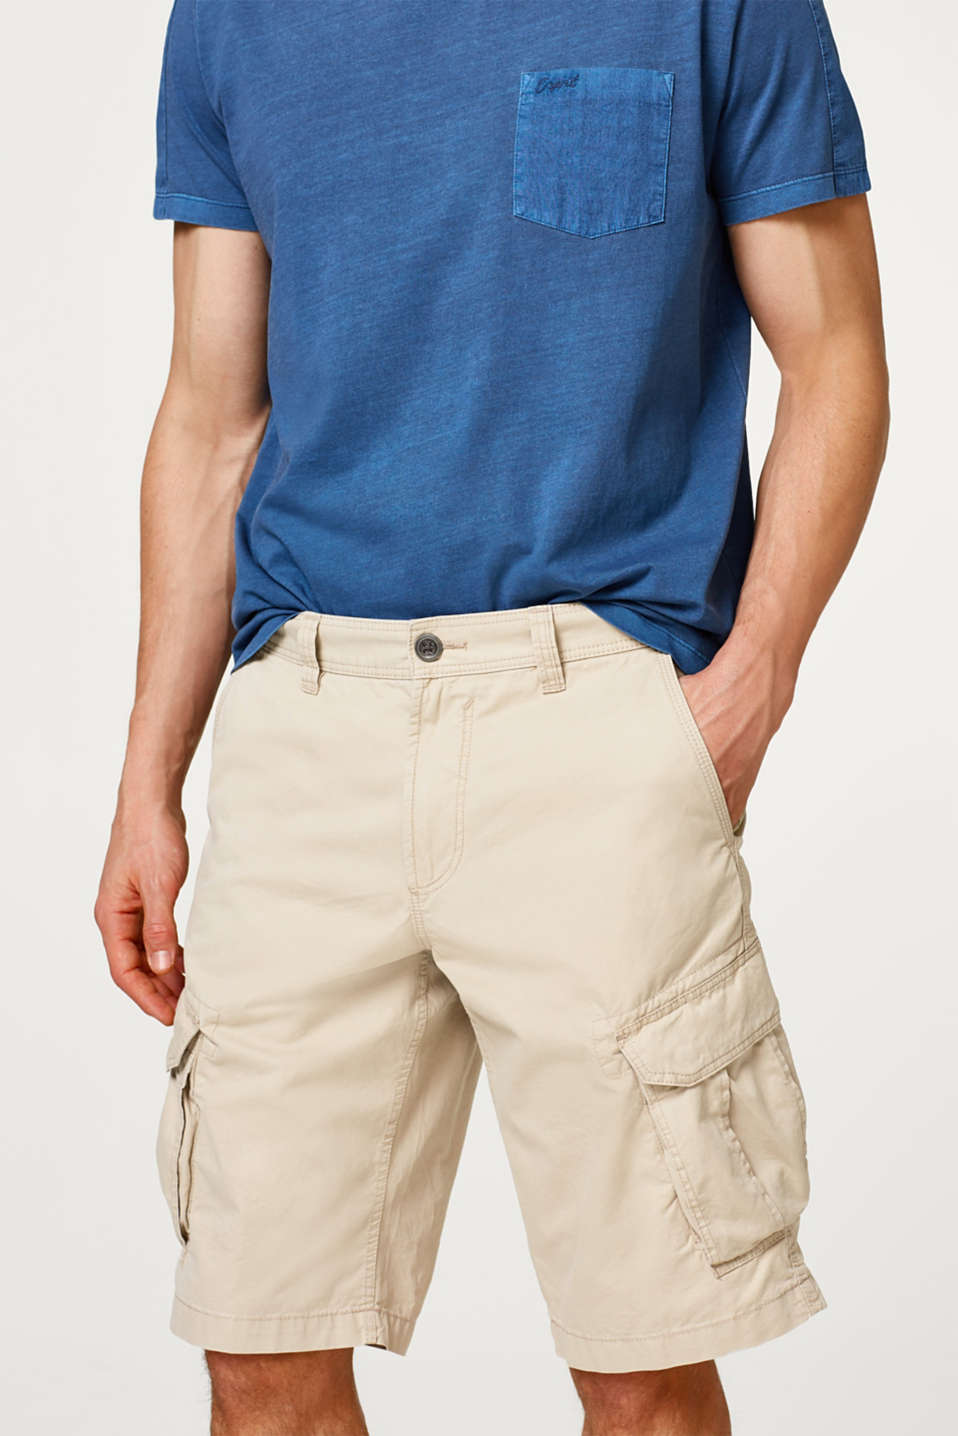 Esprit - Pure cotton cargo shorts